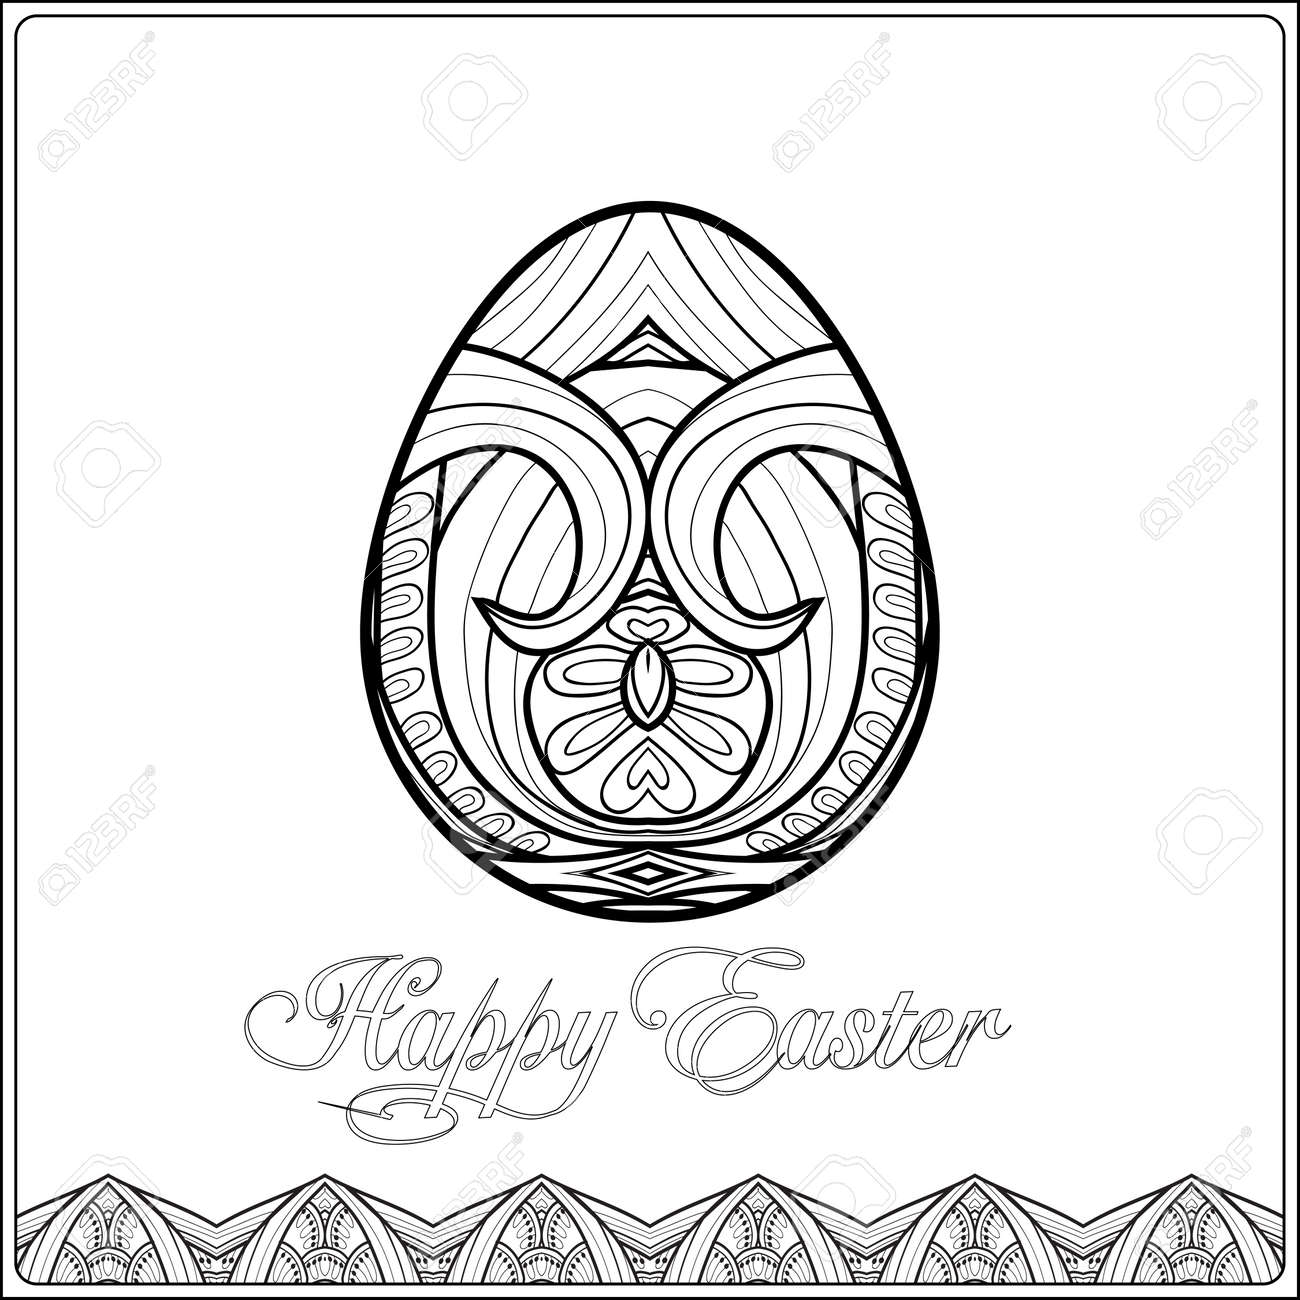 Easter Egg Coloring Book For Adult And Older Children Page Outline Drawing